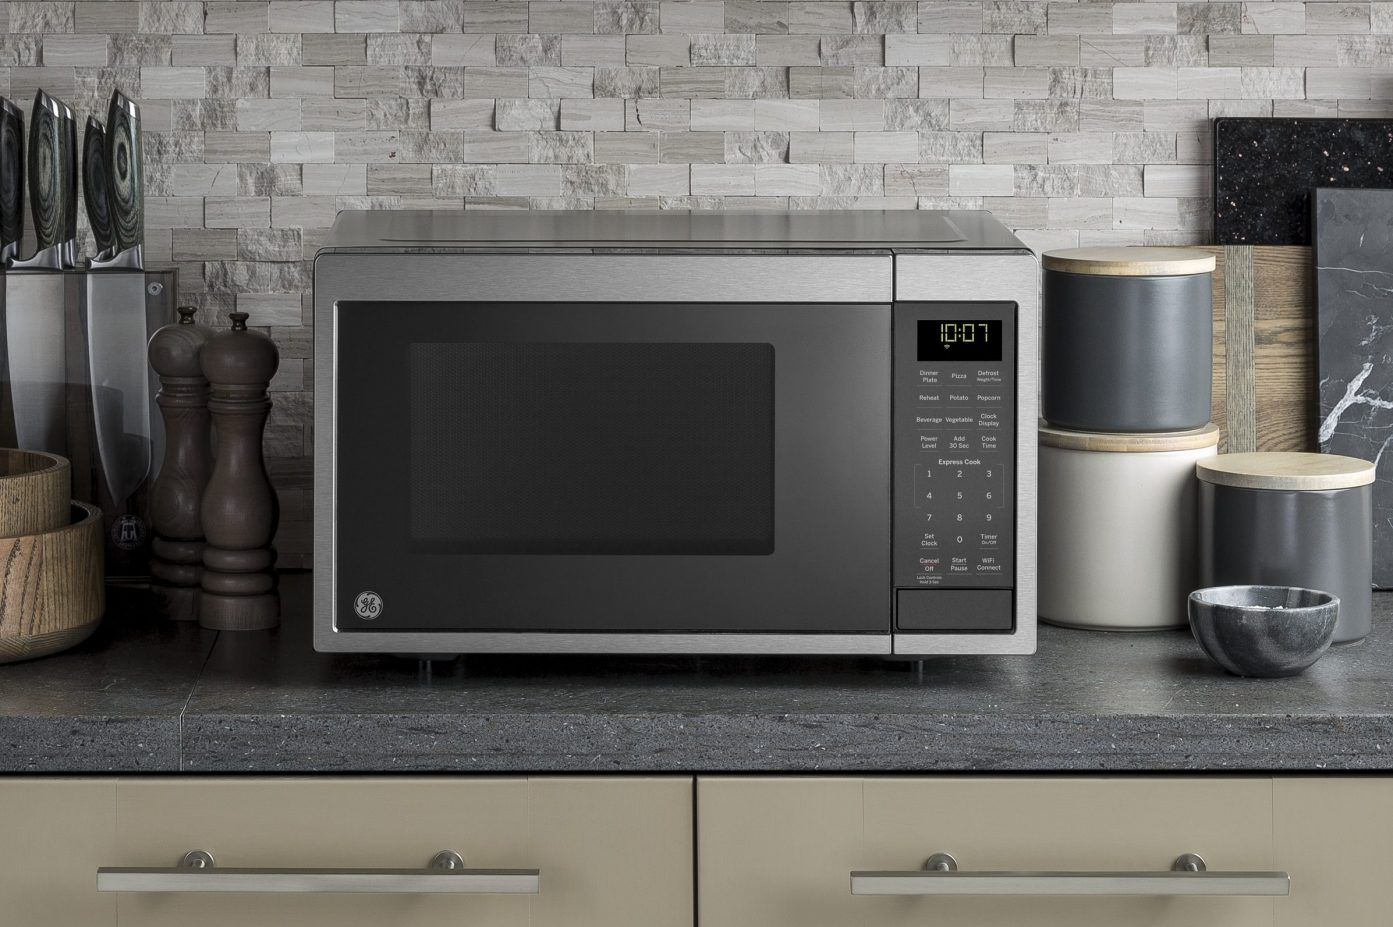 GE Appliances Launches Google Assistant on Connected